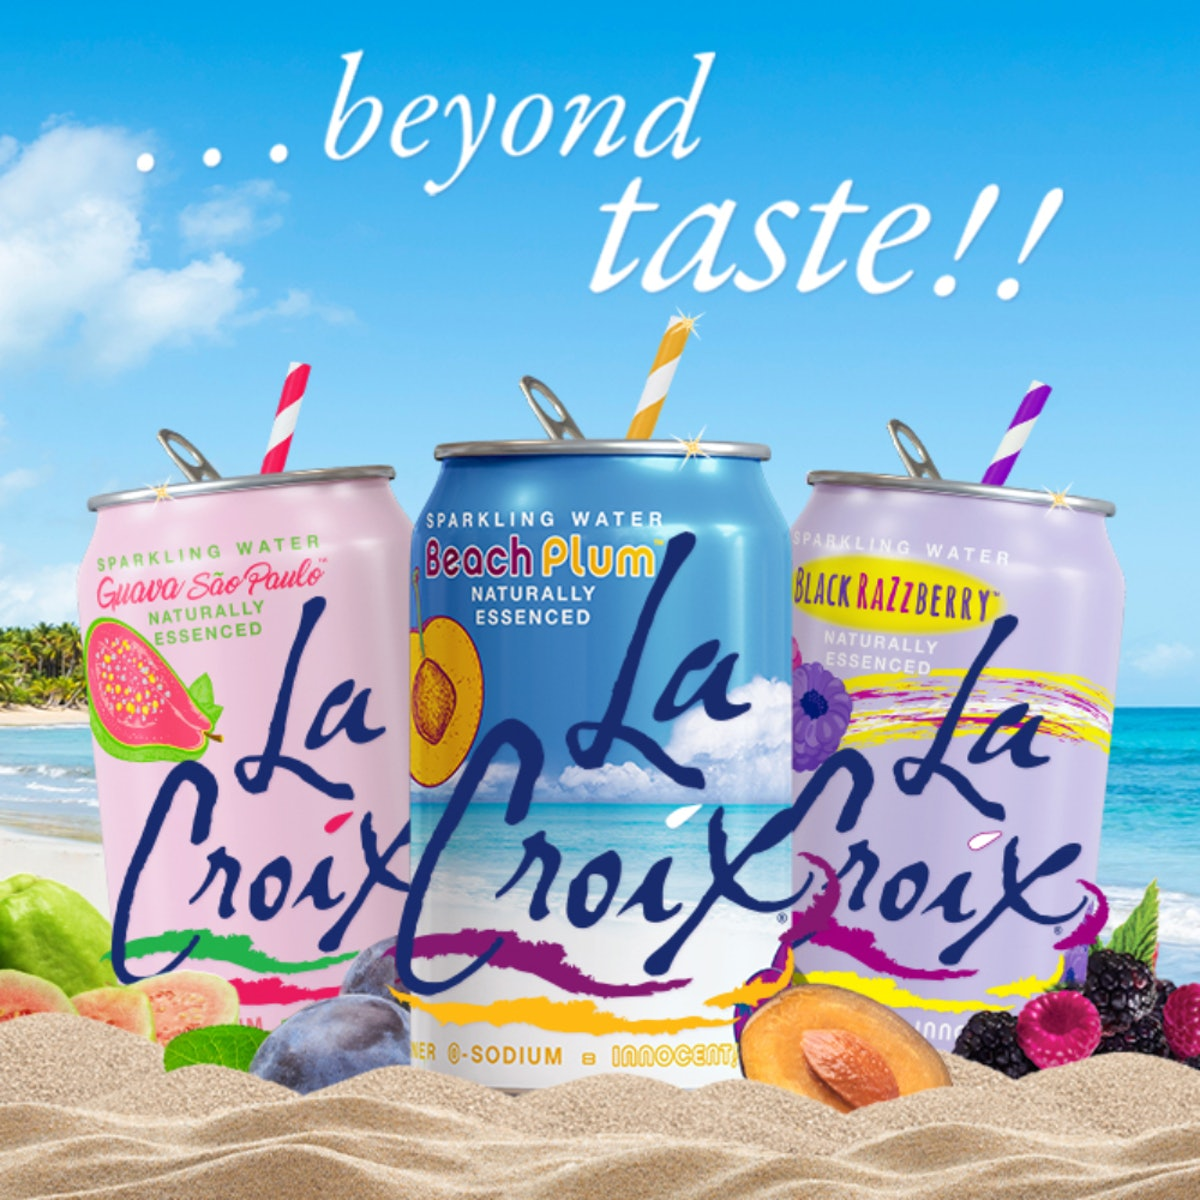 These LaCroix sparkling water flavors for spring 2021 include a tropical option.